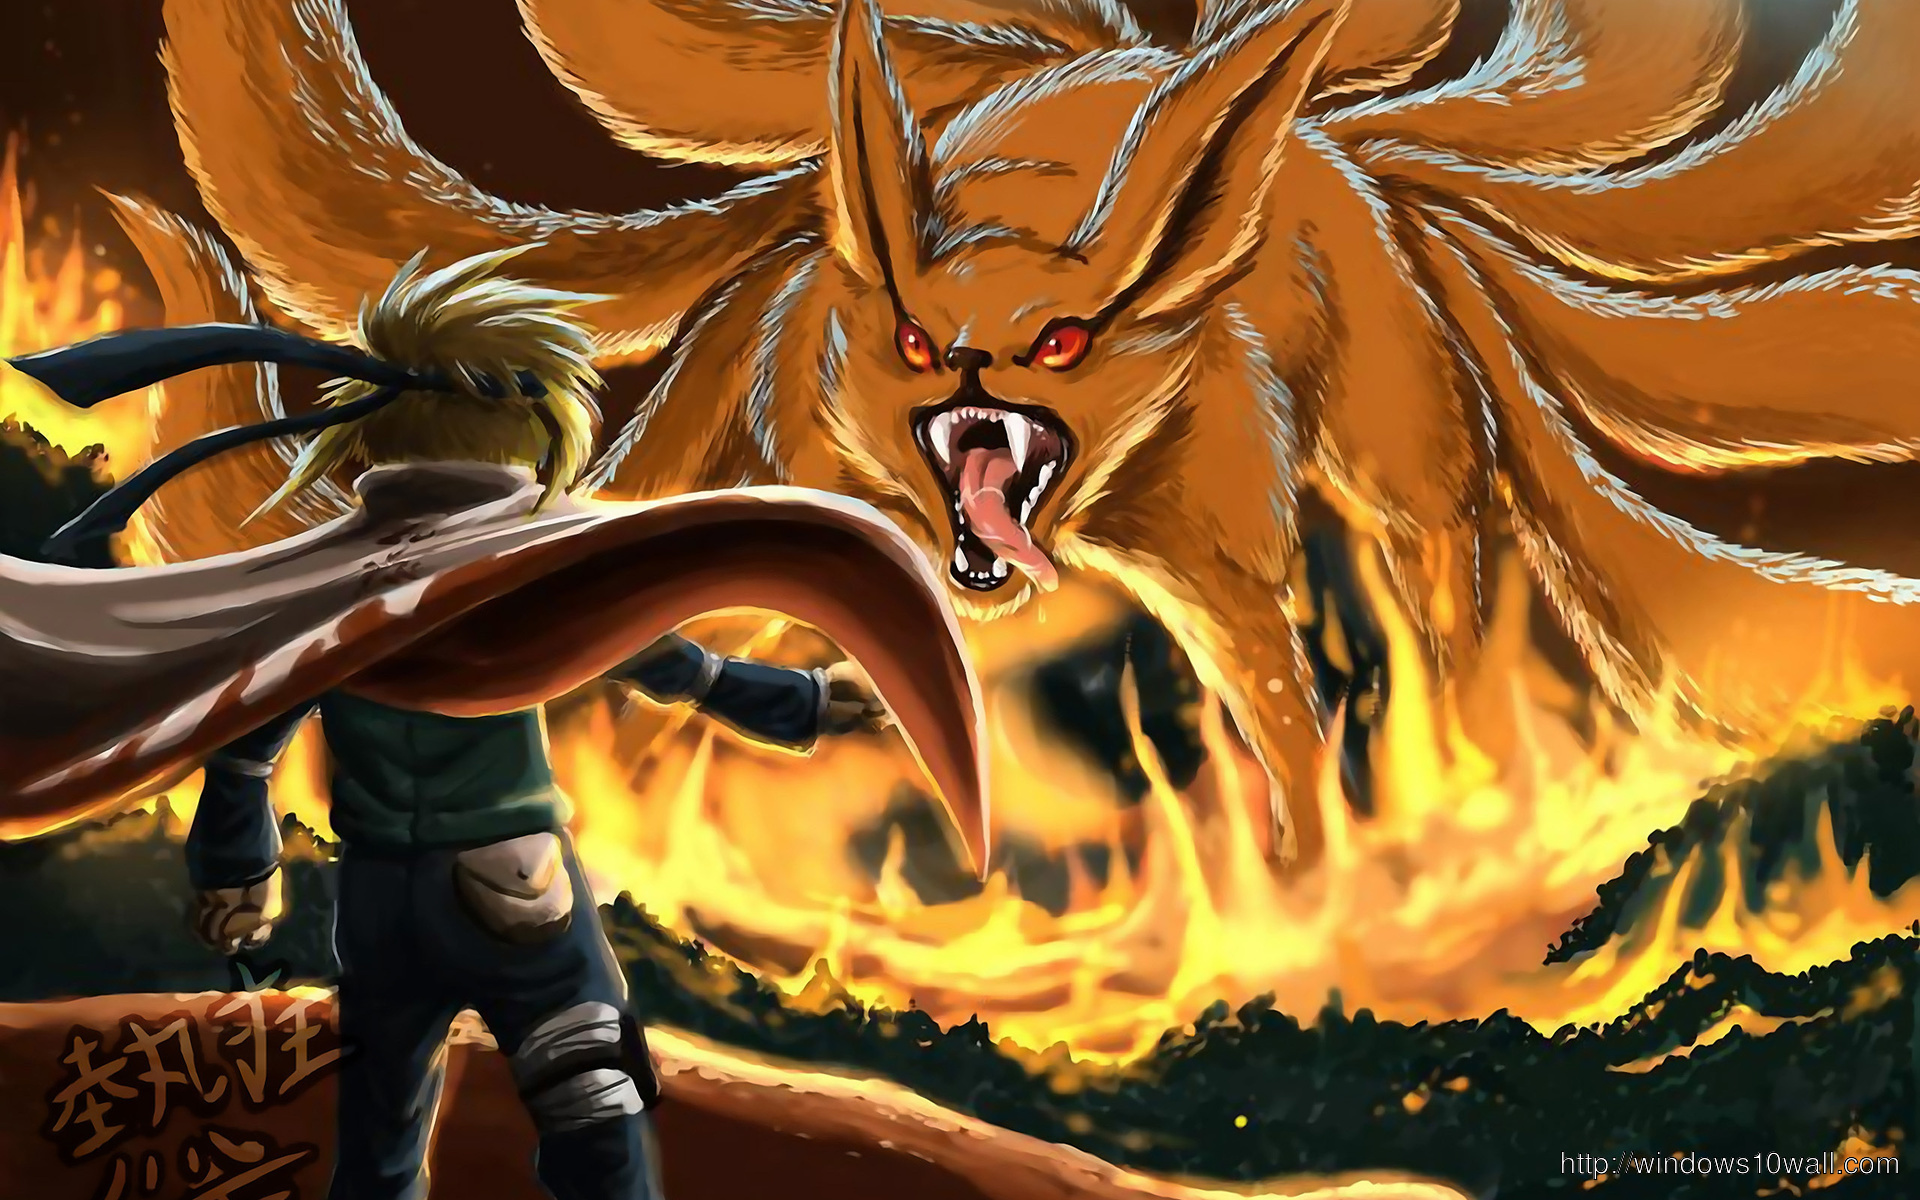 Best Wallpaper Naruto Windows 10 - naruto-background-art  Picture.jpg